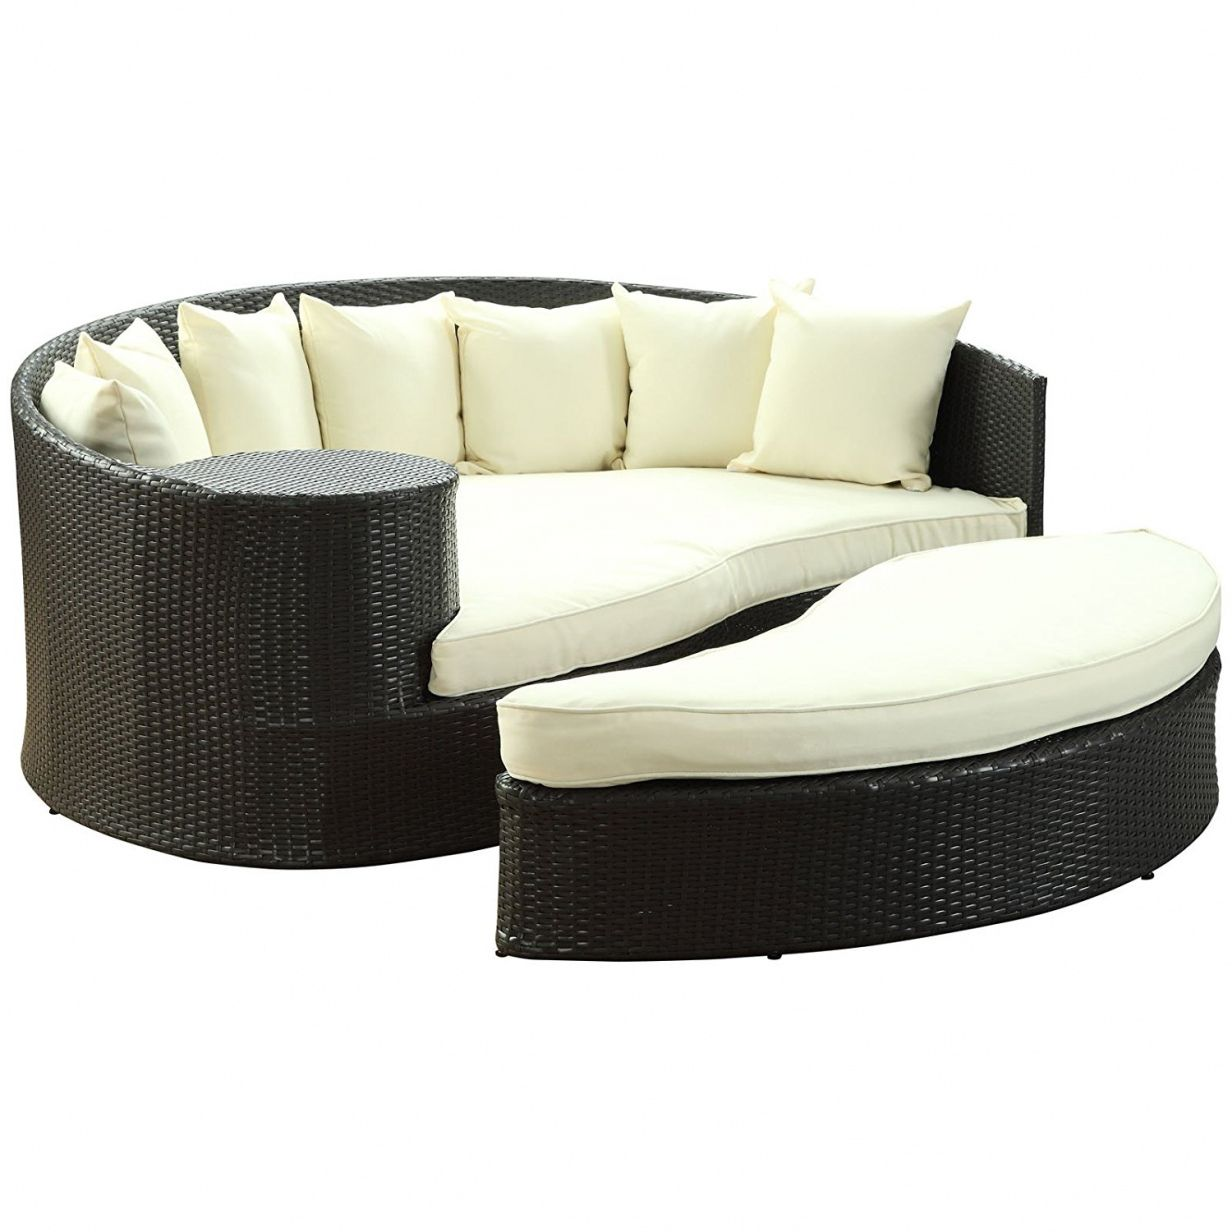 beautiful wicker patio daybed check more at http dust war com